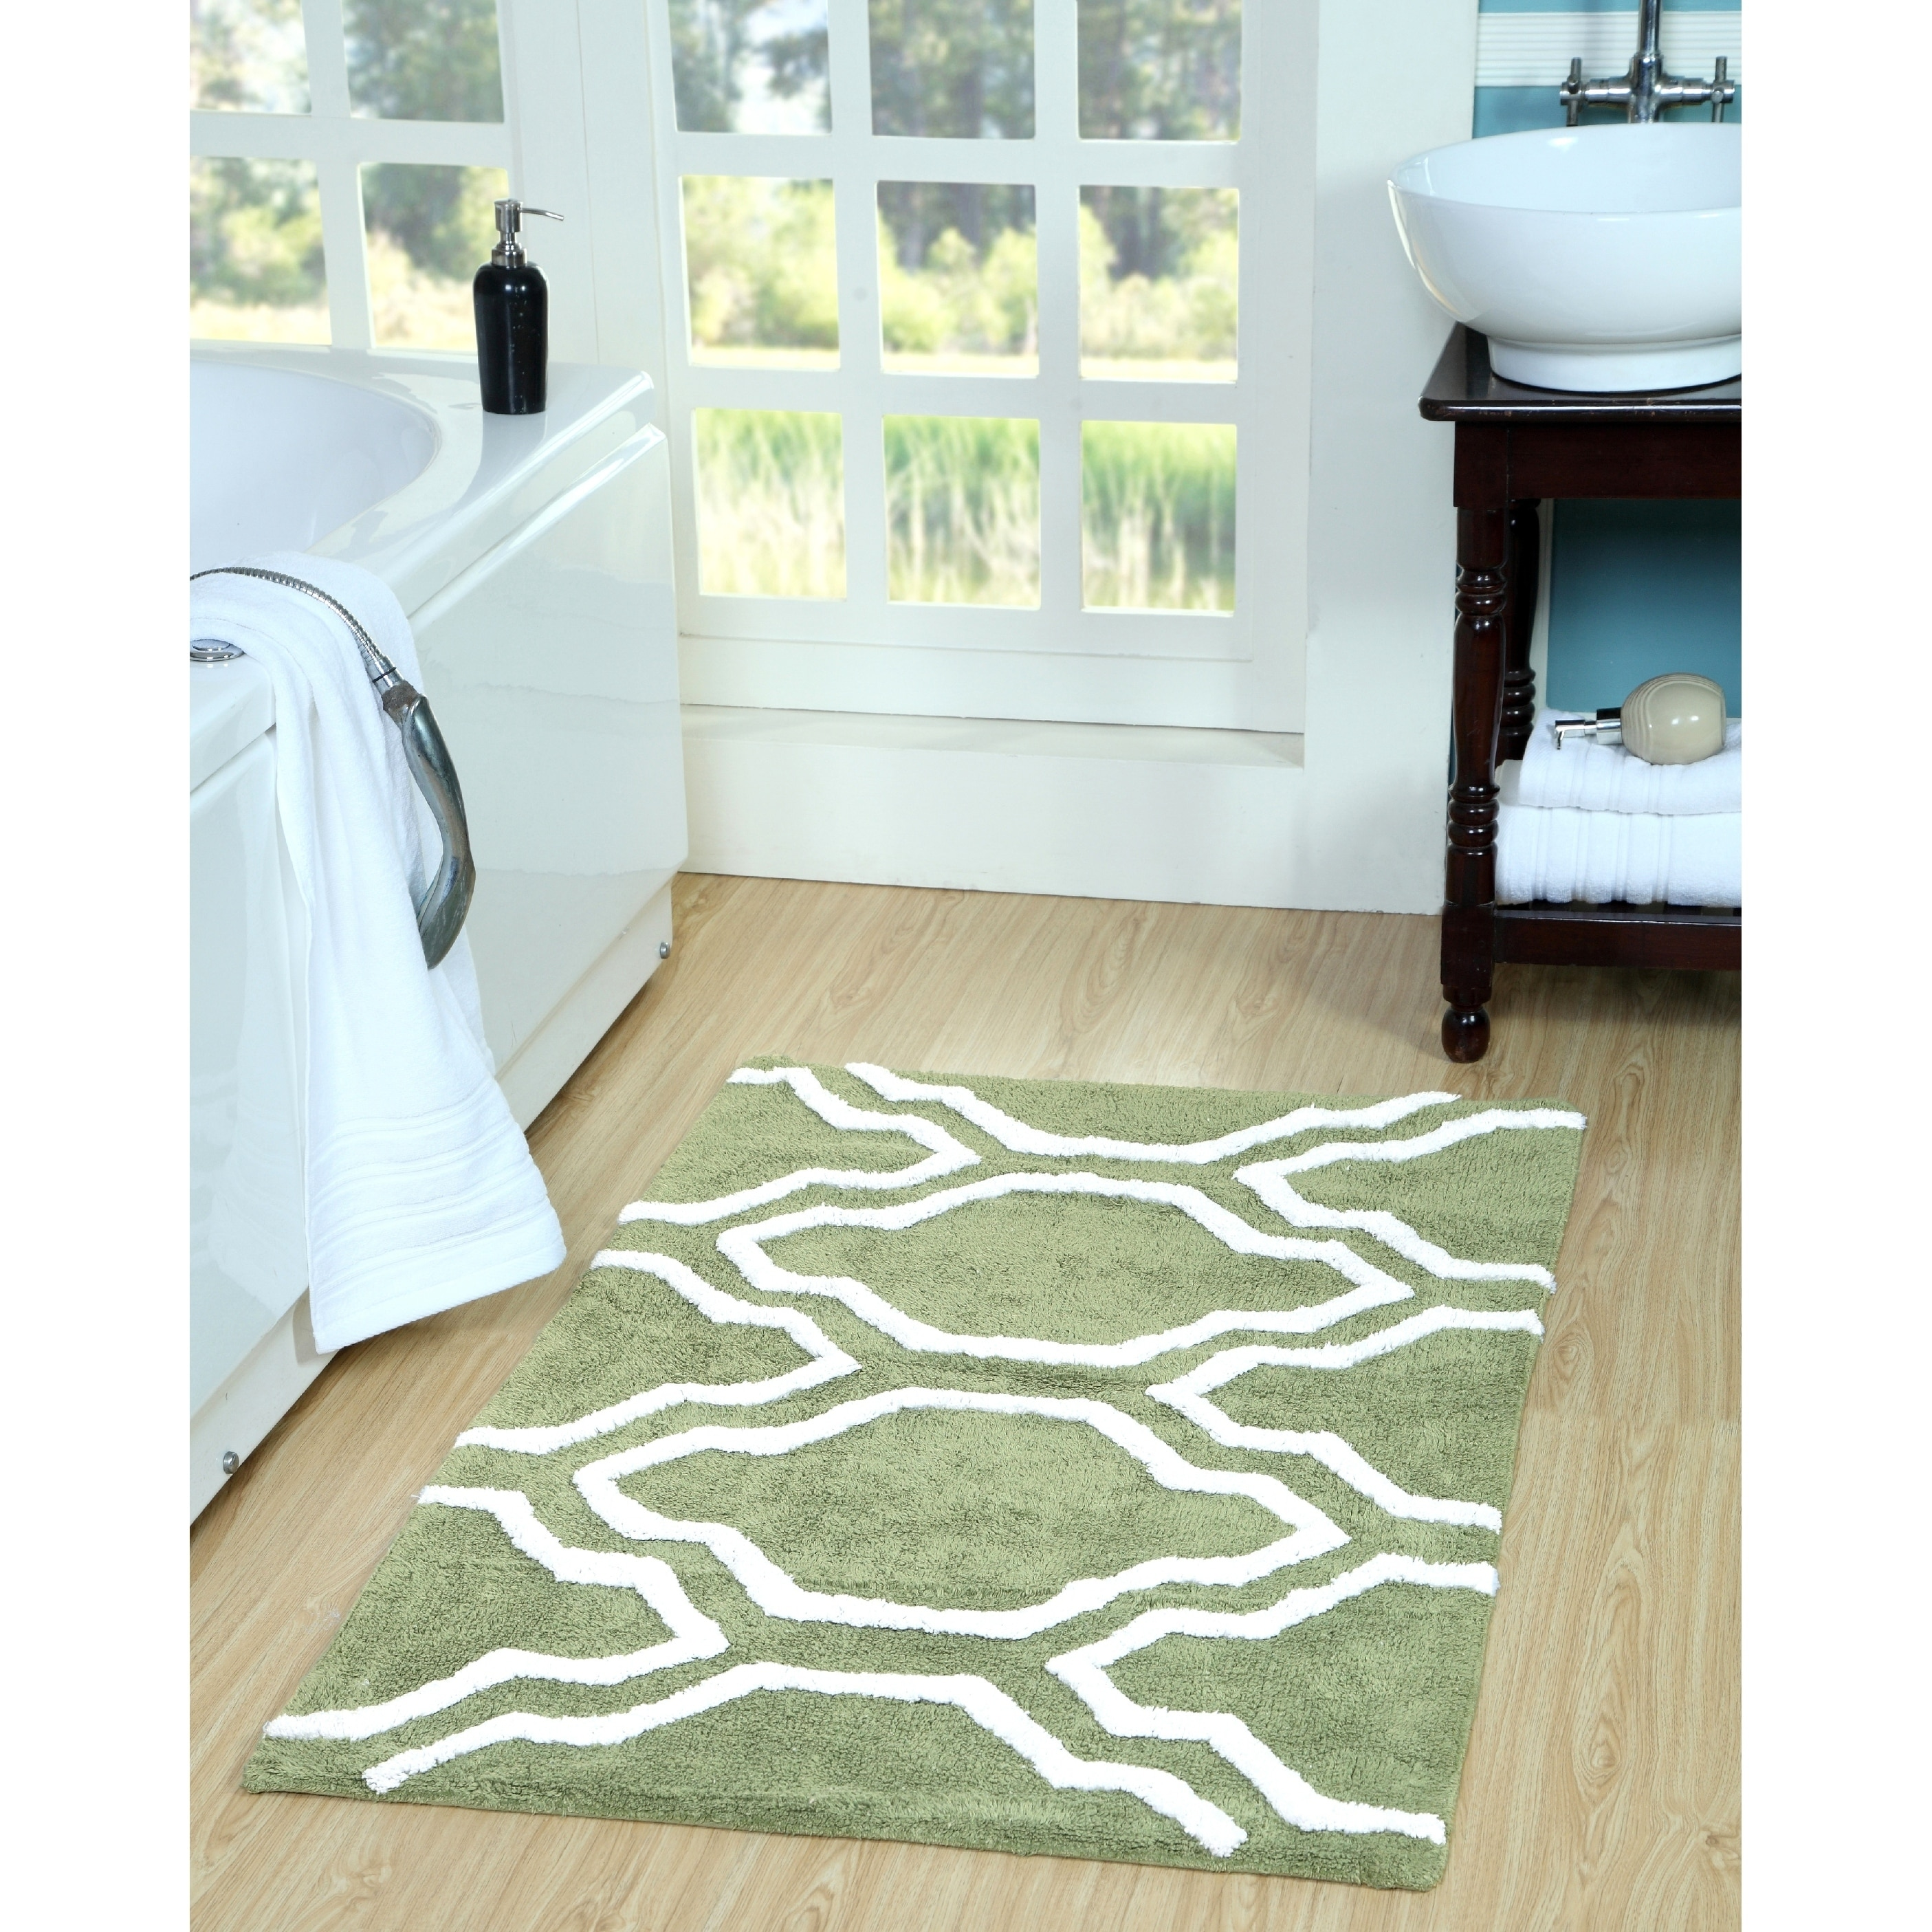 pearl rm rug rugs burke area dorm online by decor nourison ocean buy products design